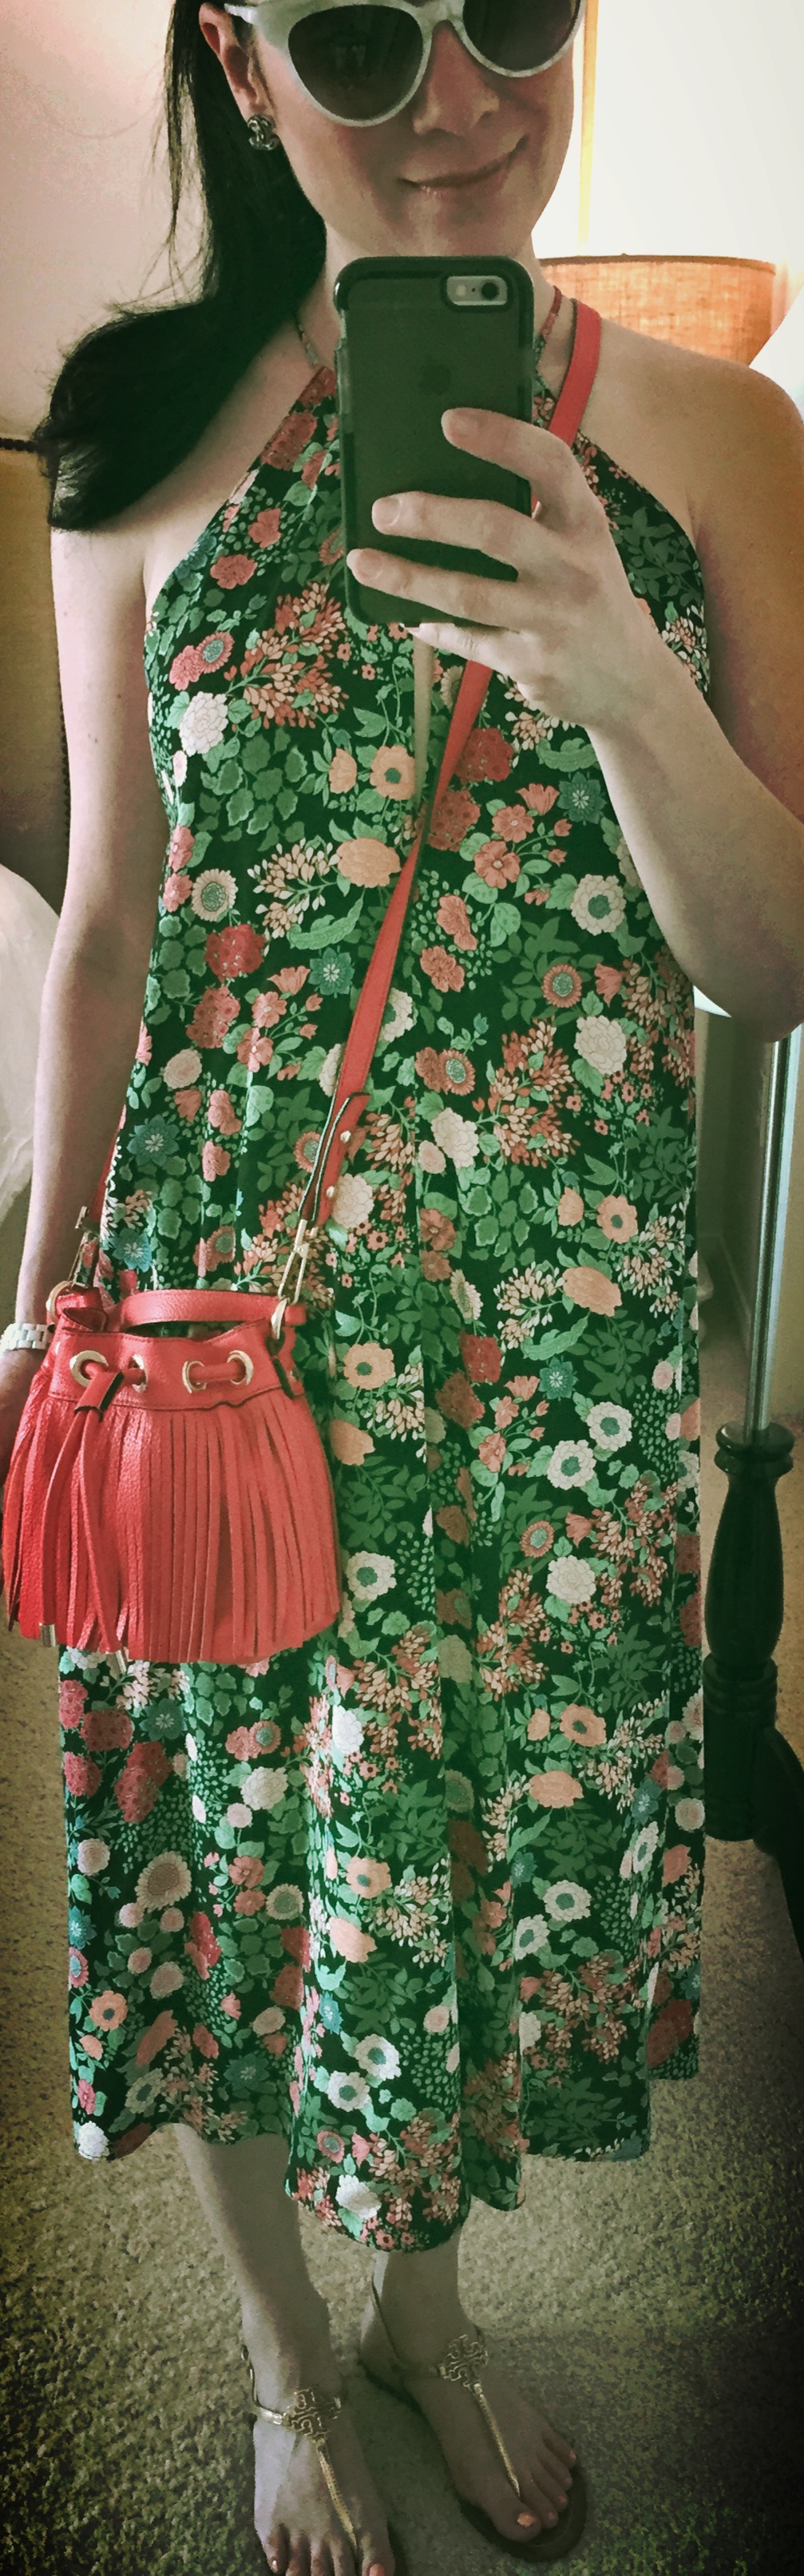 August 16th, Sunday Brunch in Floral and Tory Burch sandals